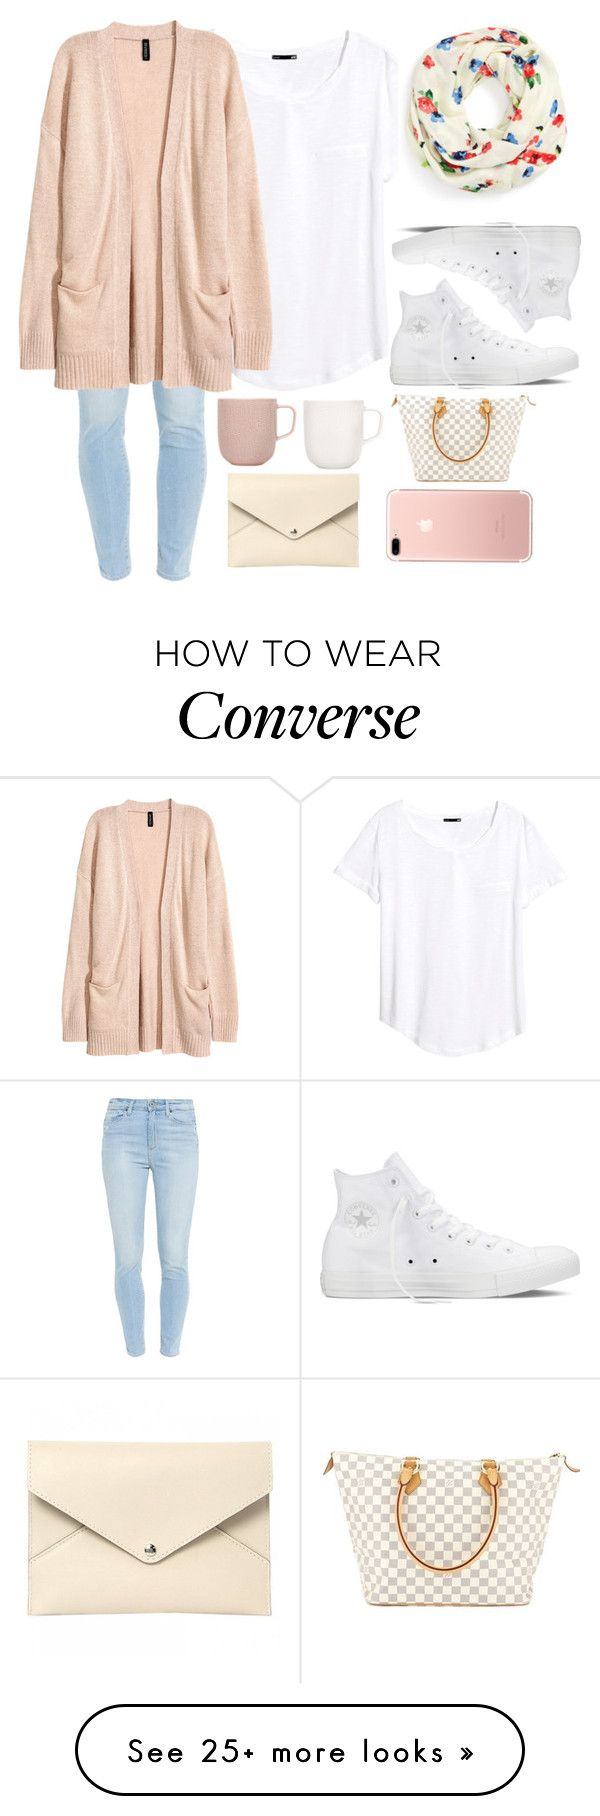 """100 Questions Part 1"" by thesabriner on Polyvore featuring H&M, Kate Spade, Paige Denim, Converse, iittala and Louis Vuitton"